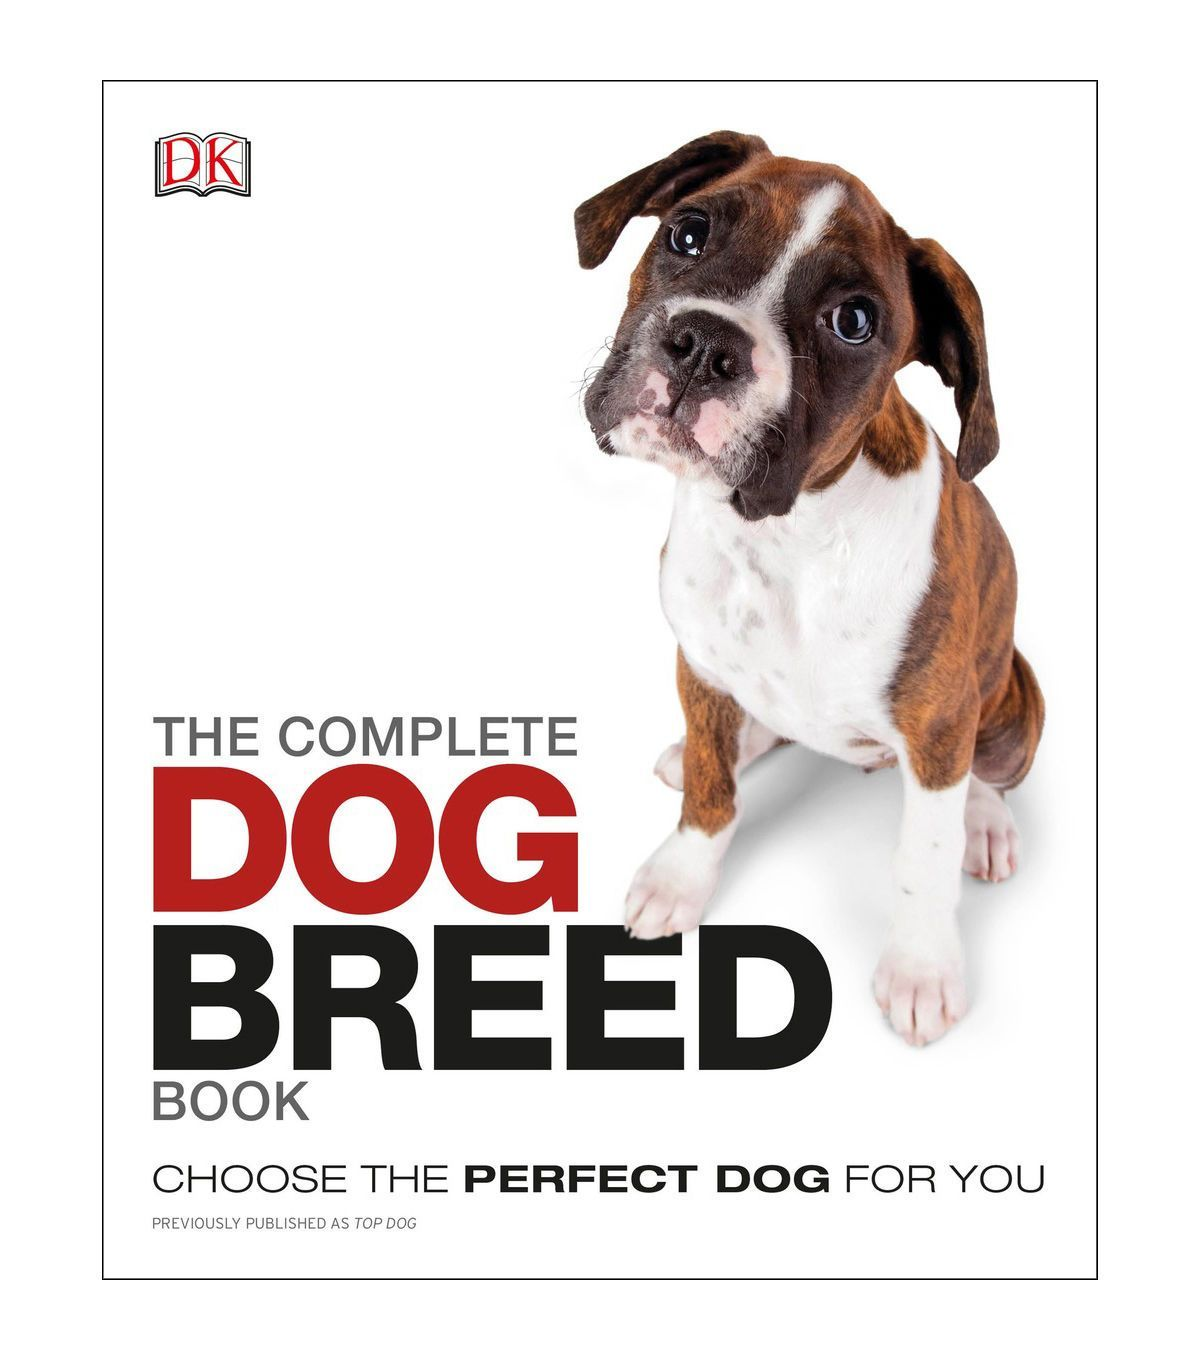 The complete dog breed book pdf